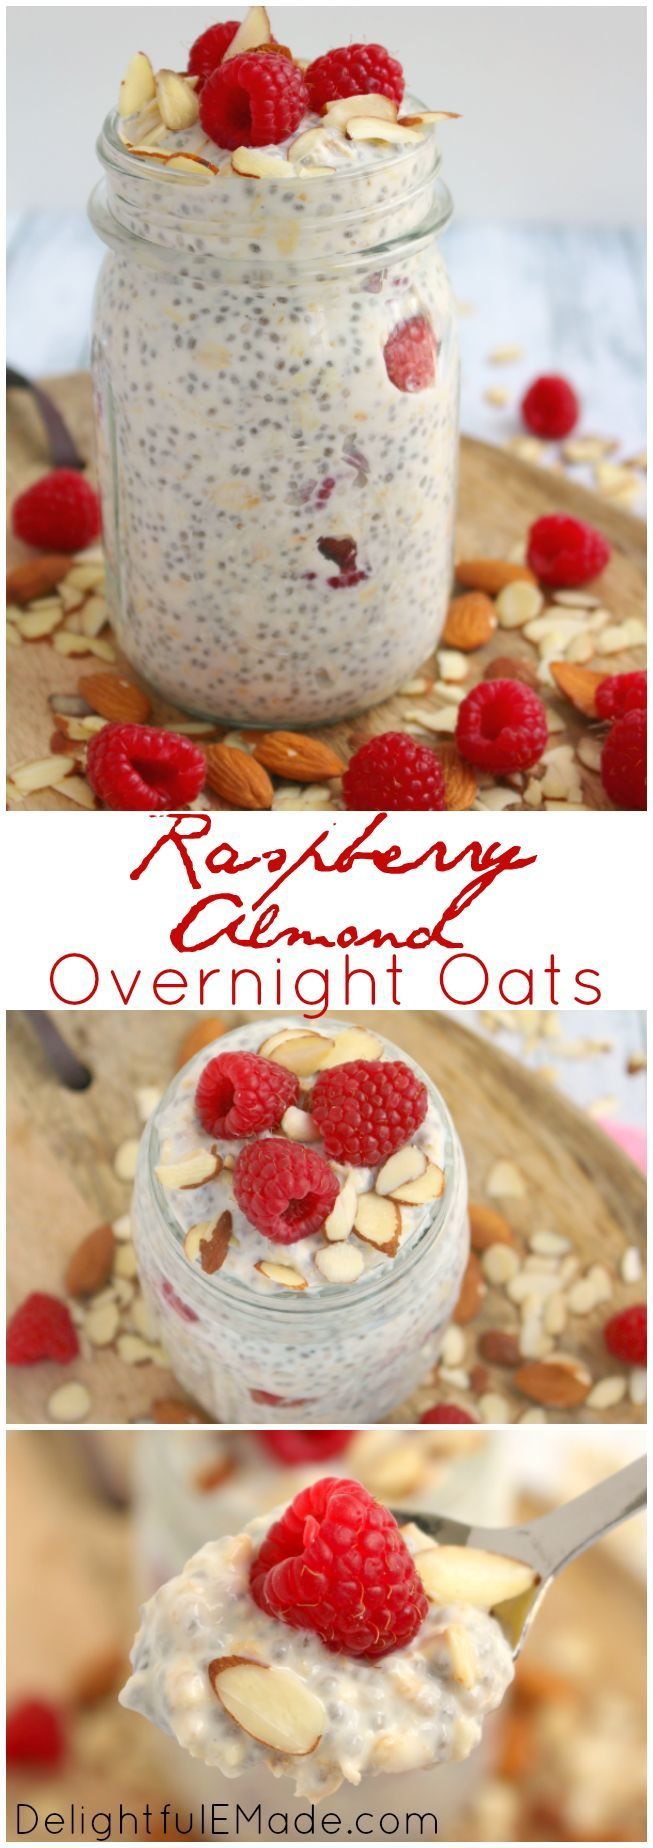 Sweet raspberries, crunchy almonds, chia seeds and oats makes for the most amazing breakfast!  Nutritious, delicious, and filling, its the perfect start to your day!